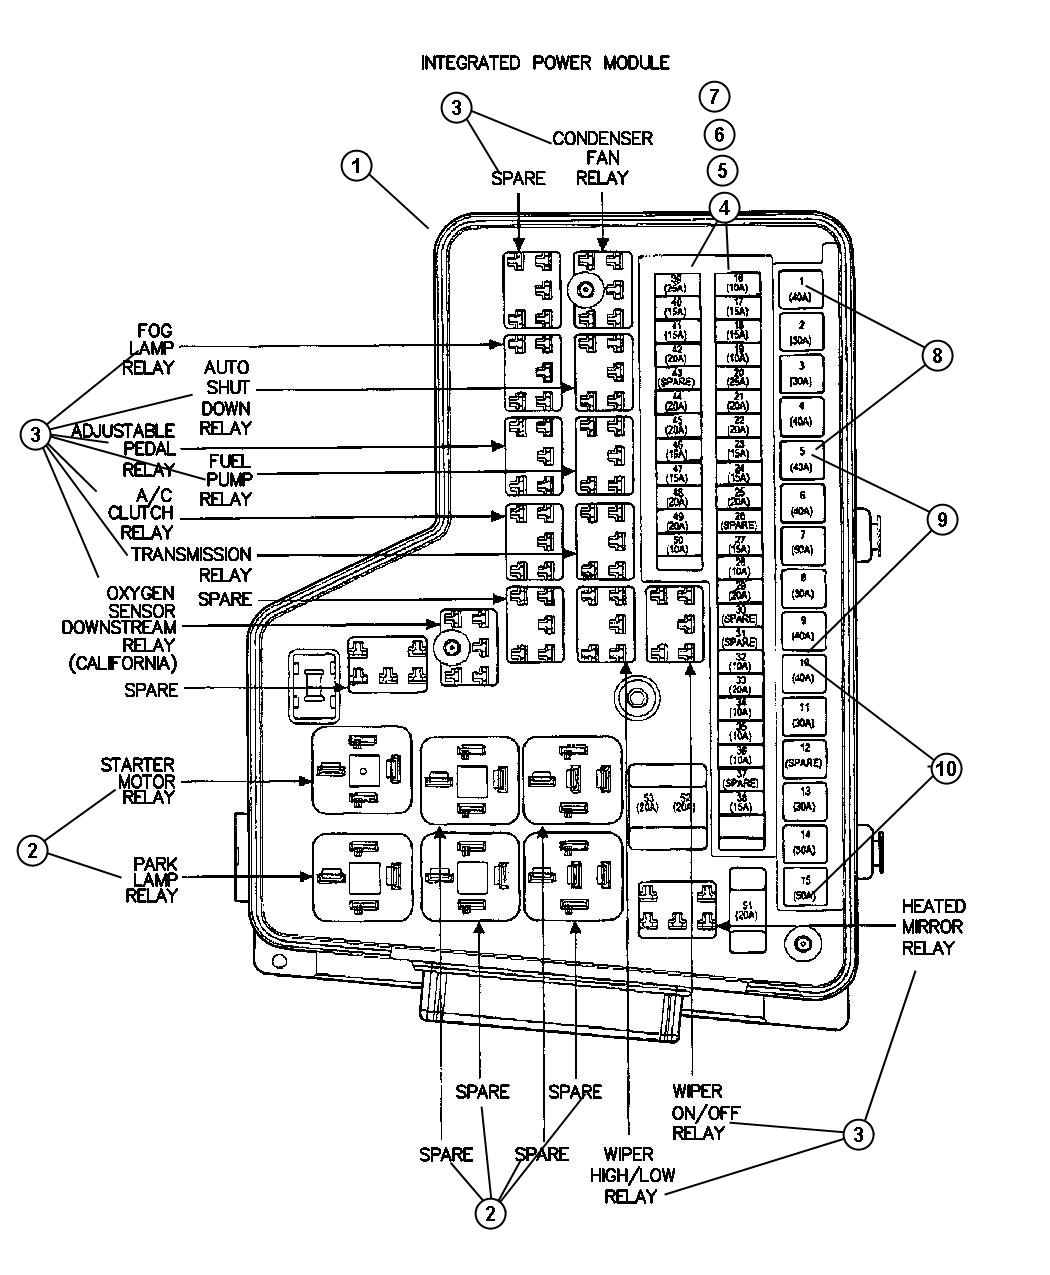 dodge ram wiring diagram 2016 window type aircon for towing mirrors get